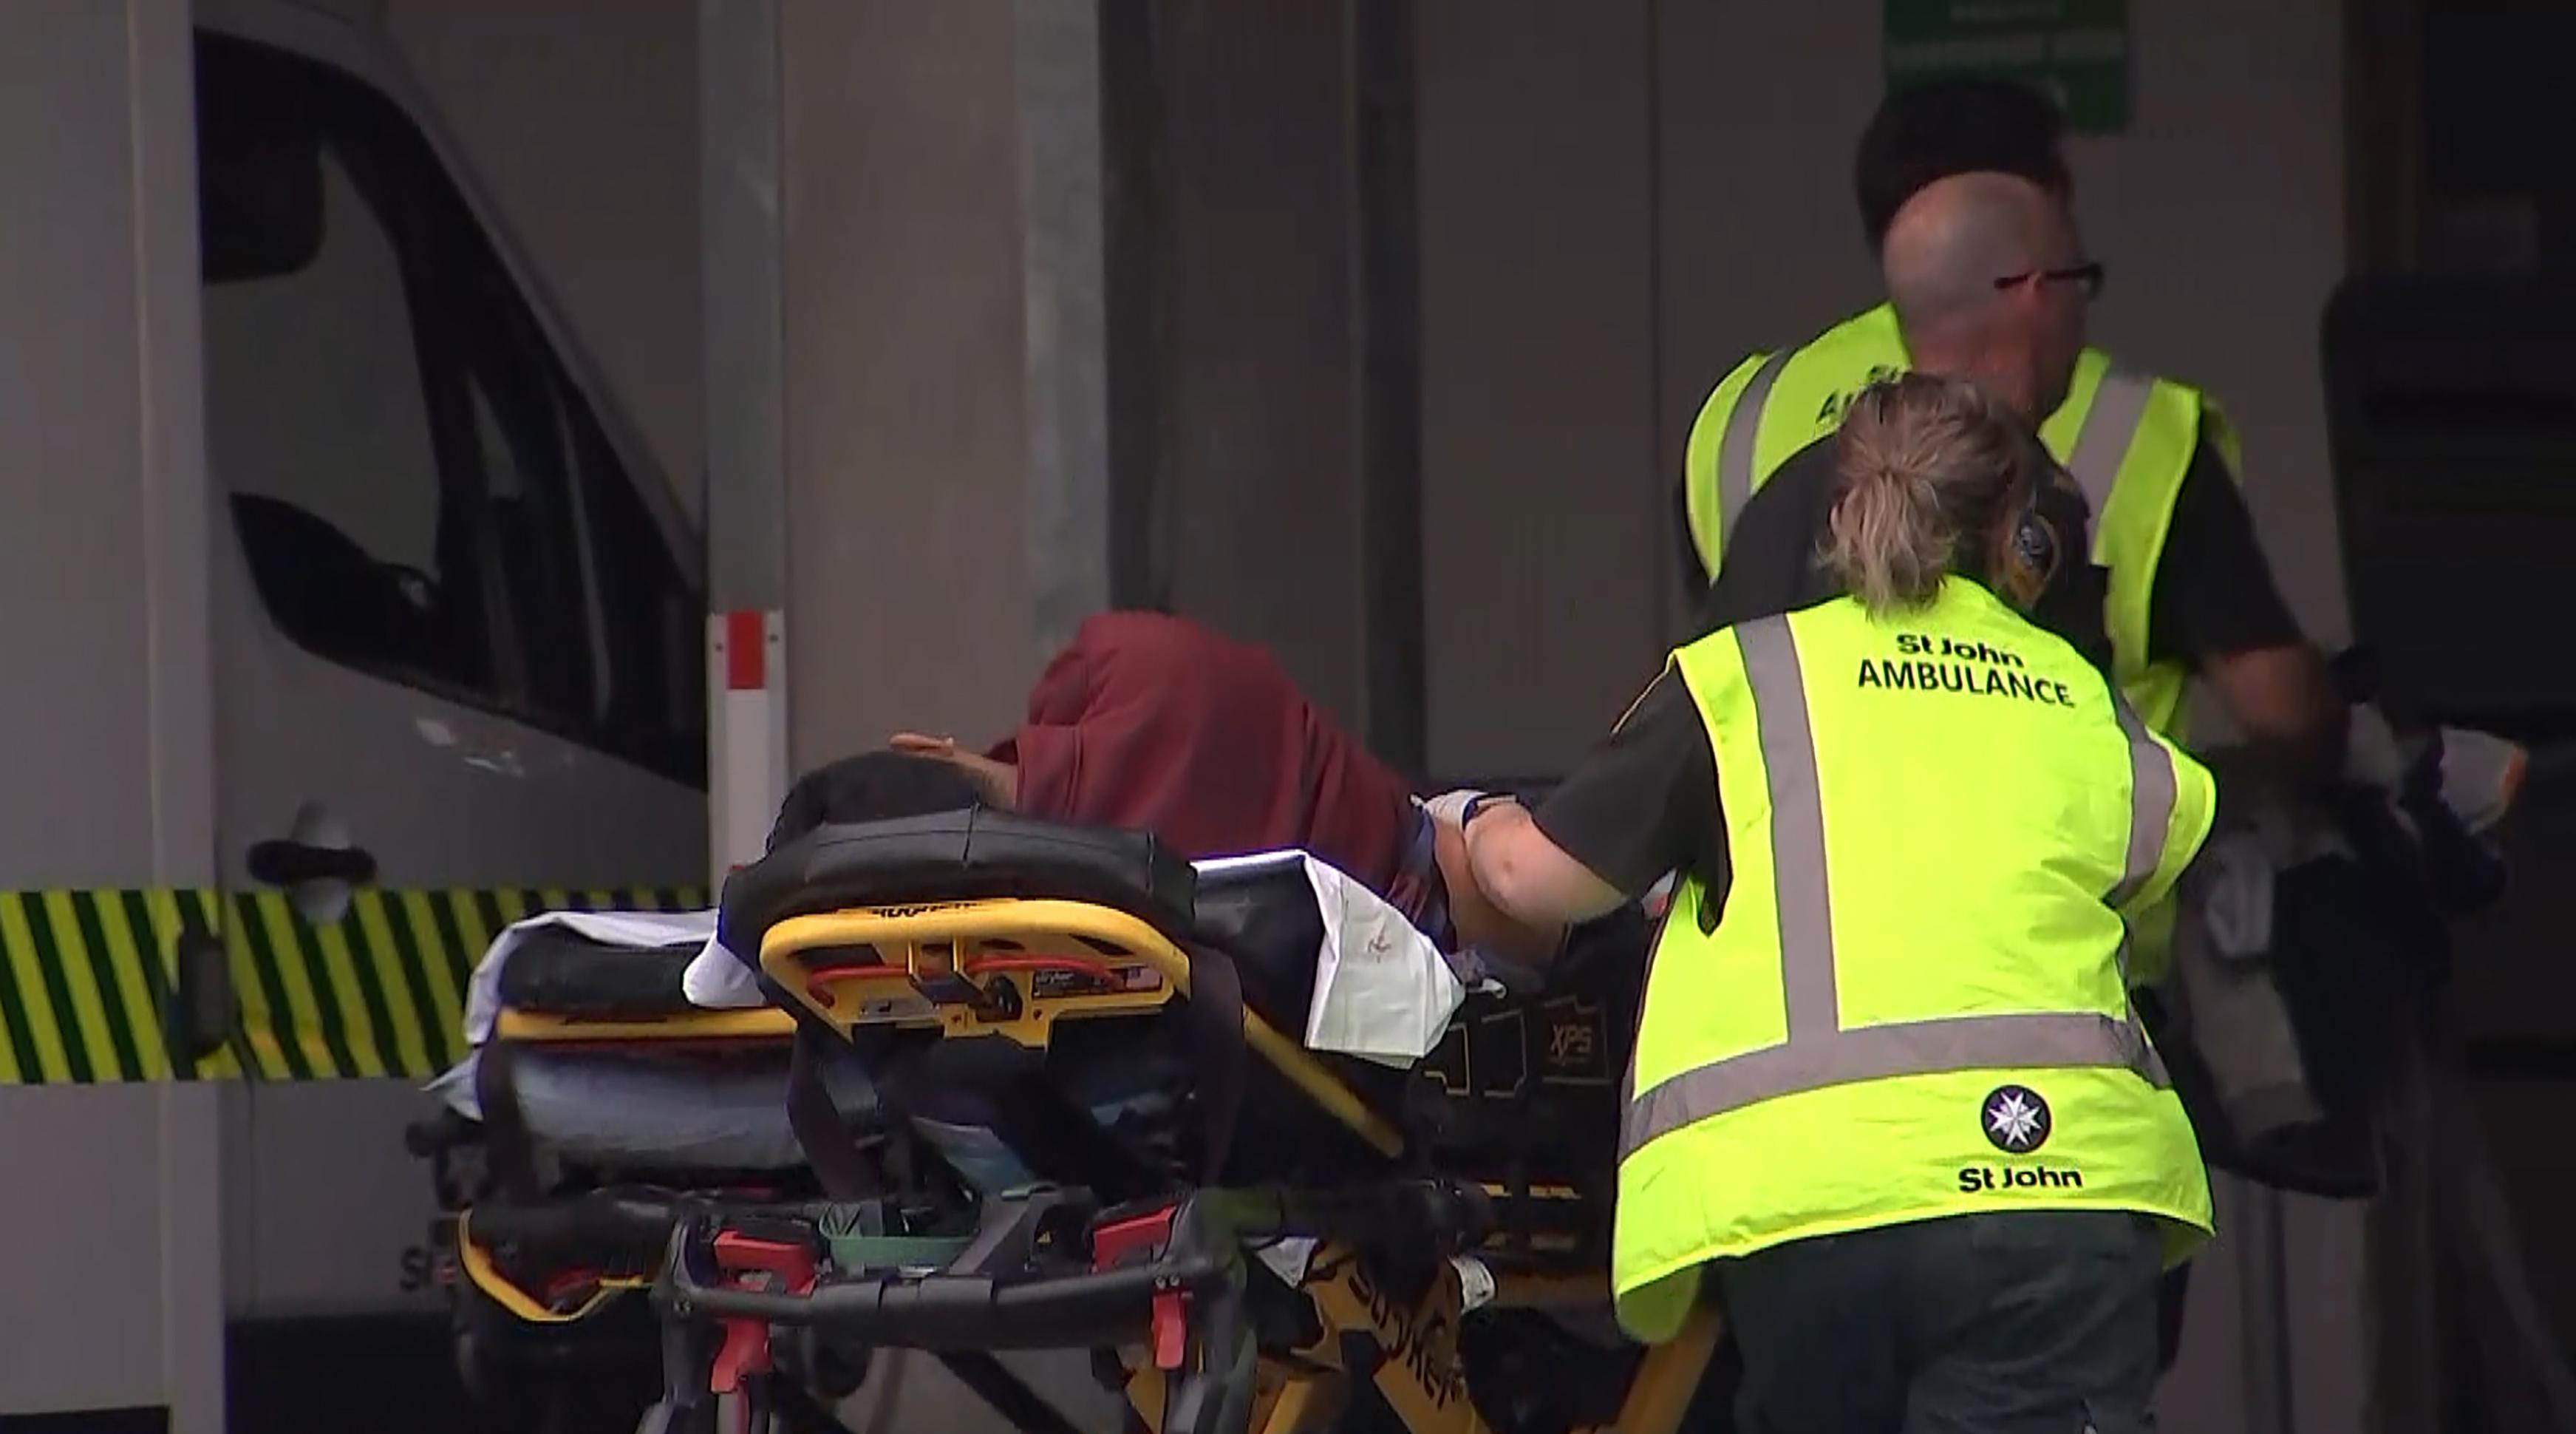 Nz Shooting Footage News: Don't Share Christchurch Mosque Shooting Video, Twitter